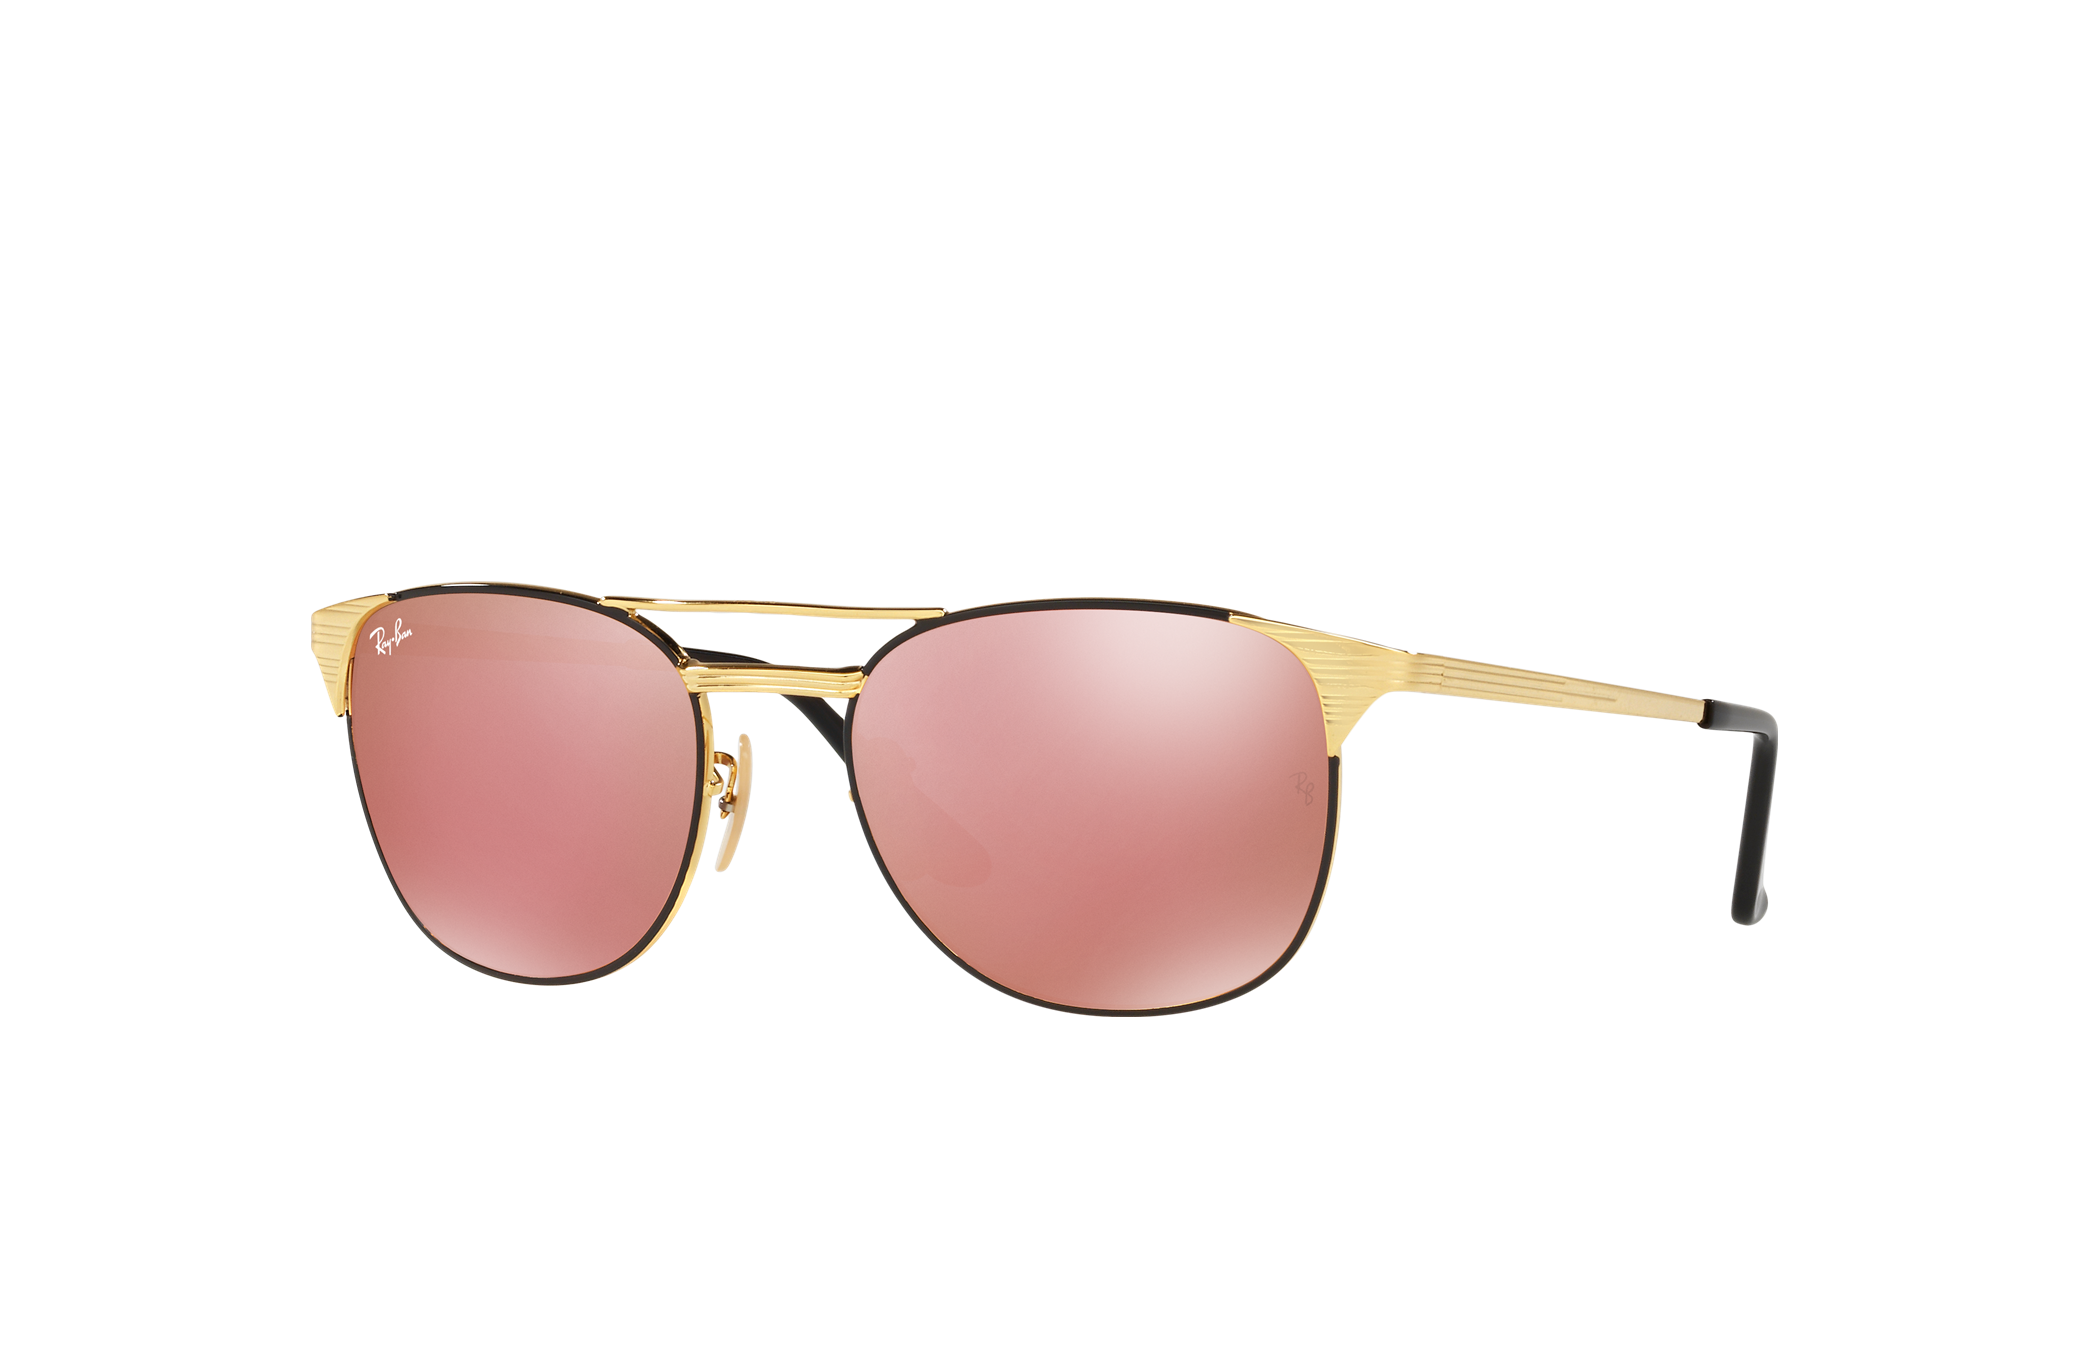 Ray-Ban Signet Gold, Pink Lenses - RB3429M